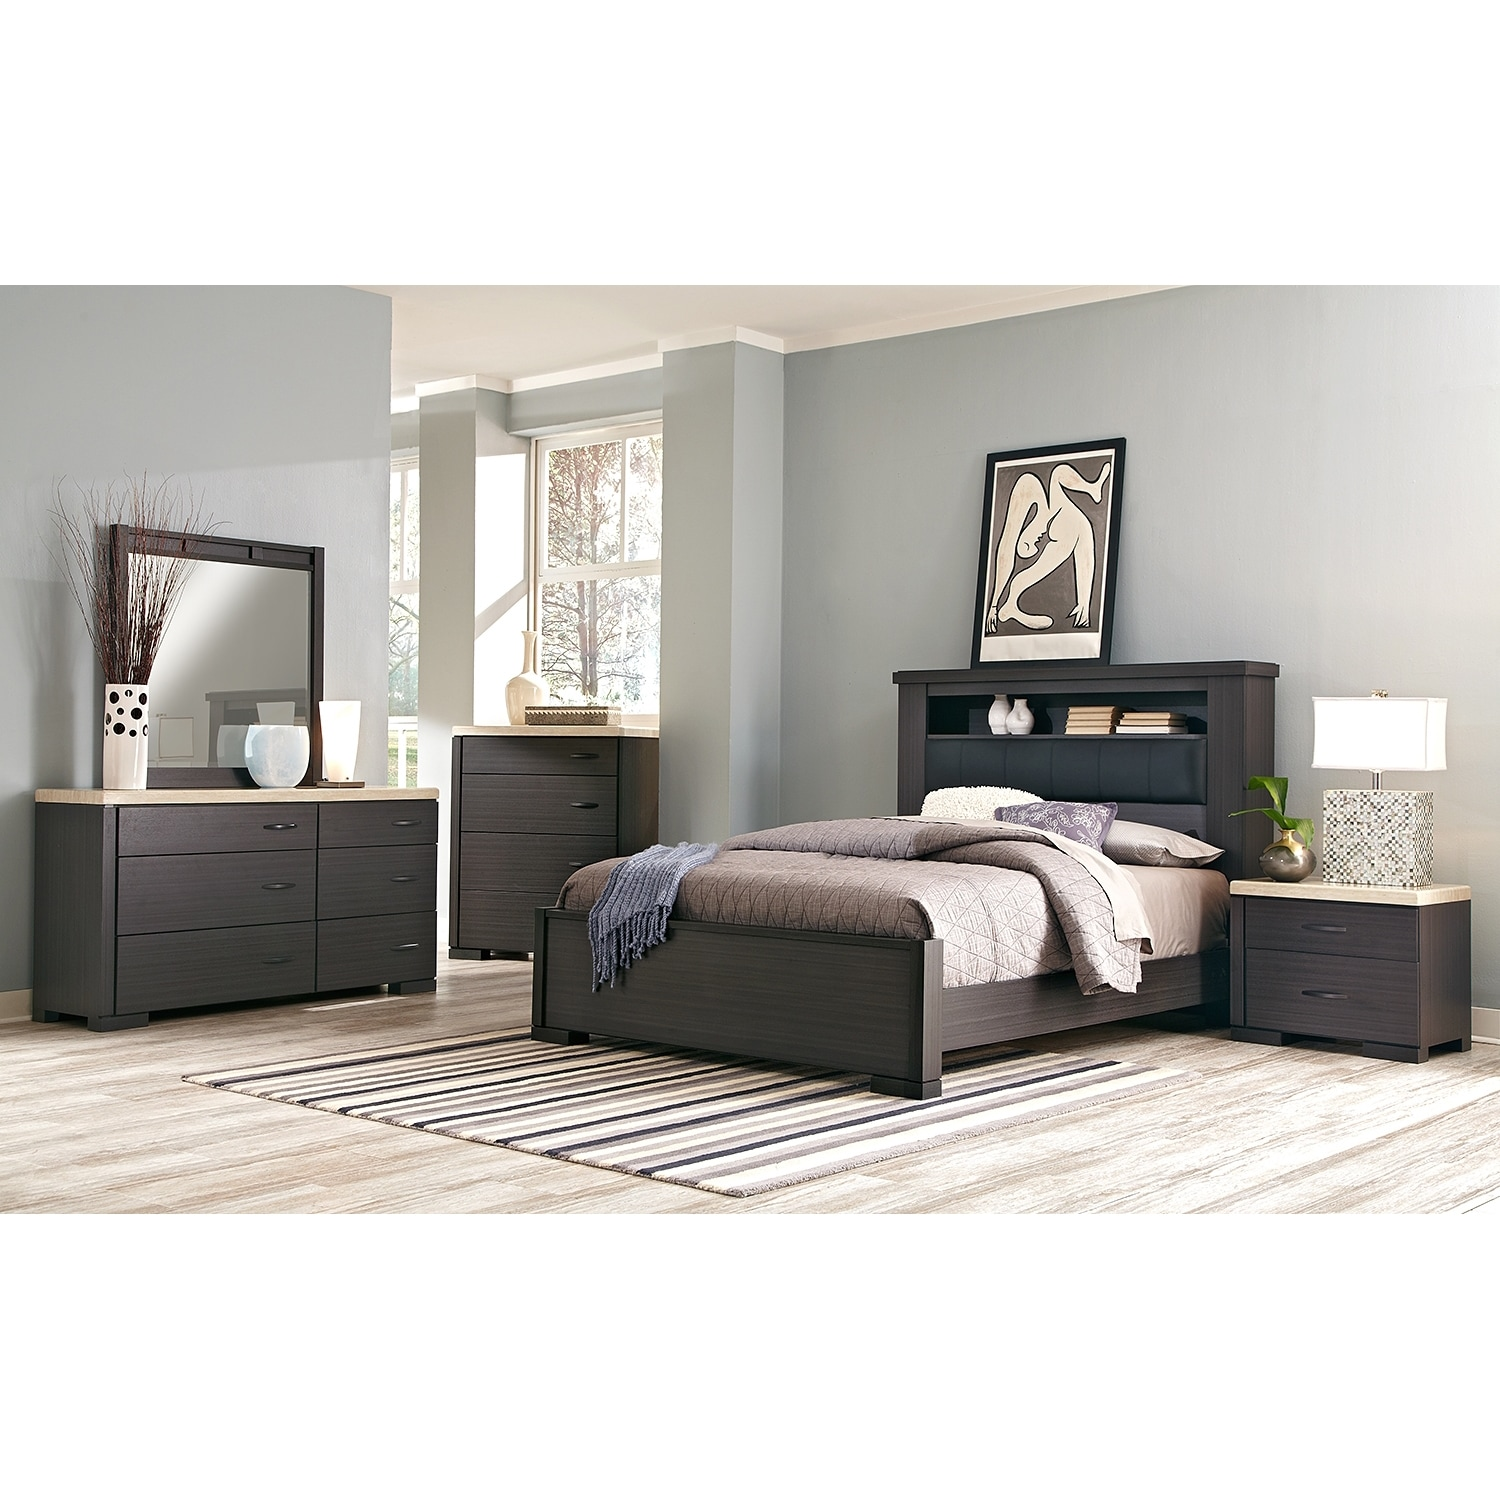 bedroom furniture camino 7 piece queen bedroom set charcoal and